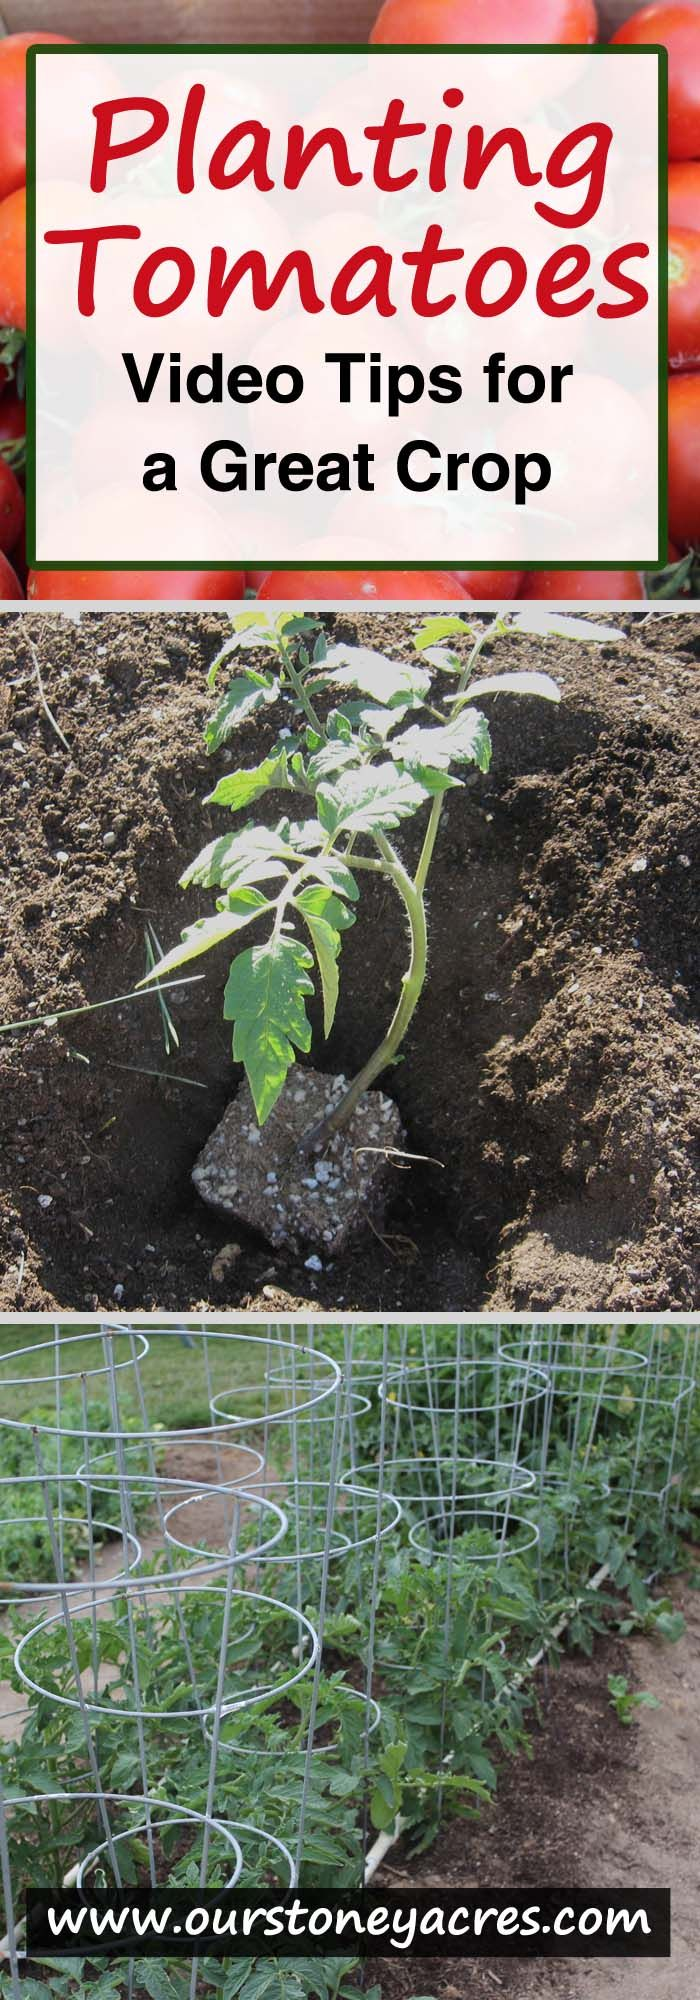 Planting tomatoes should be done in mid to late spring, after all major threats of frost have past.  In our area that means we have tomatoes in the ground around Mothers Day.